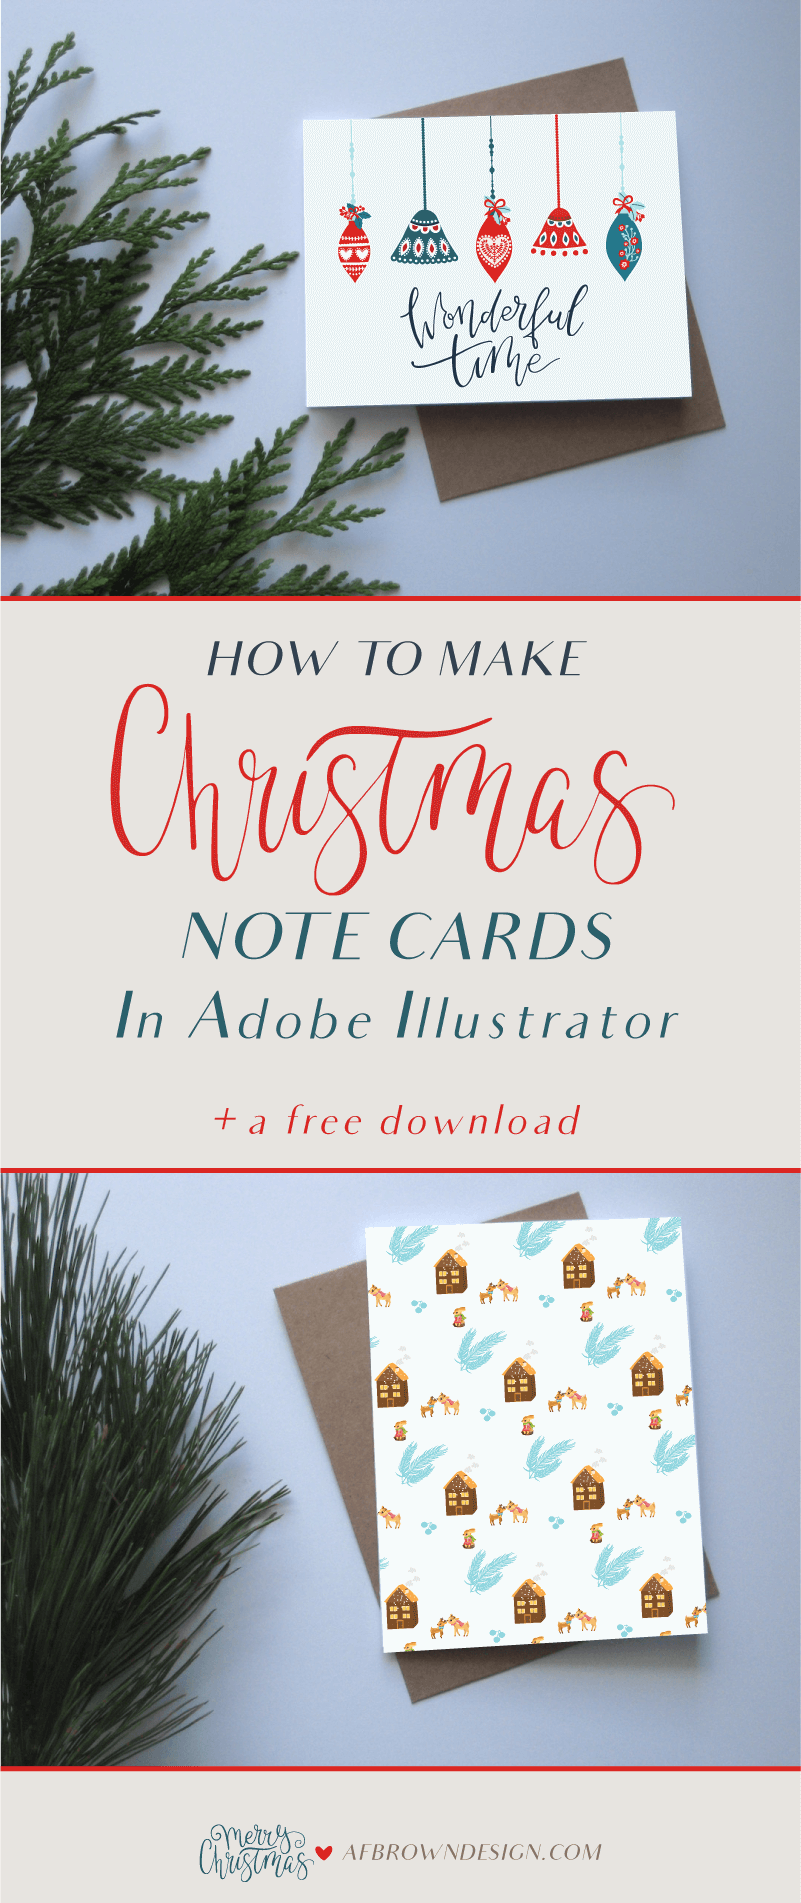 A step-by-step-tutorial on how to make Christmas note cards using Adobe Illustrator.